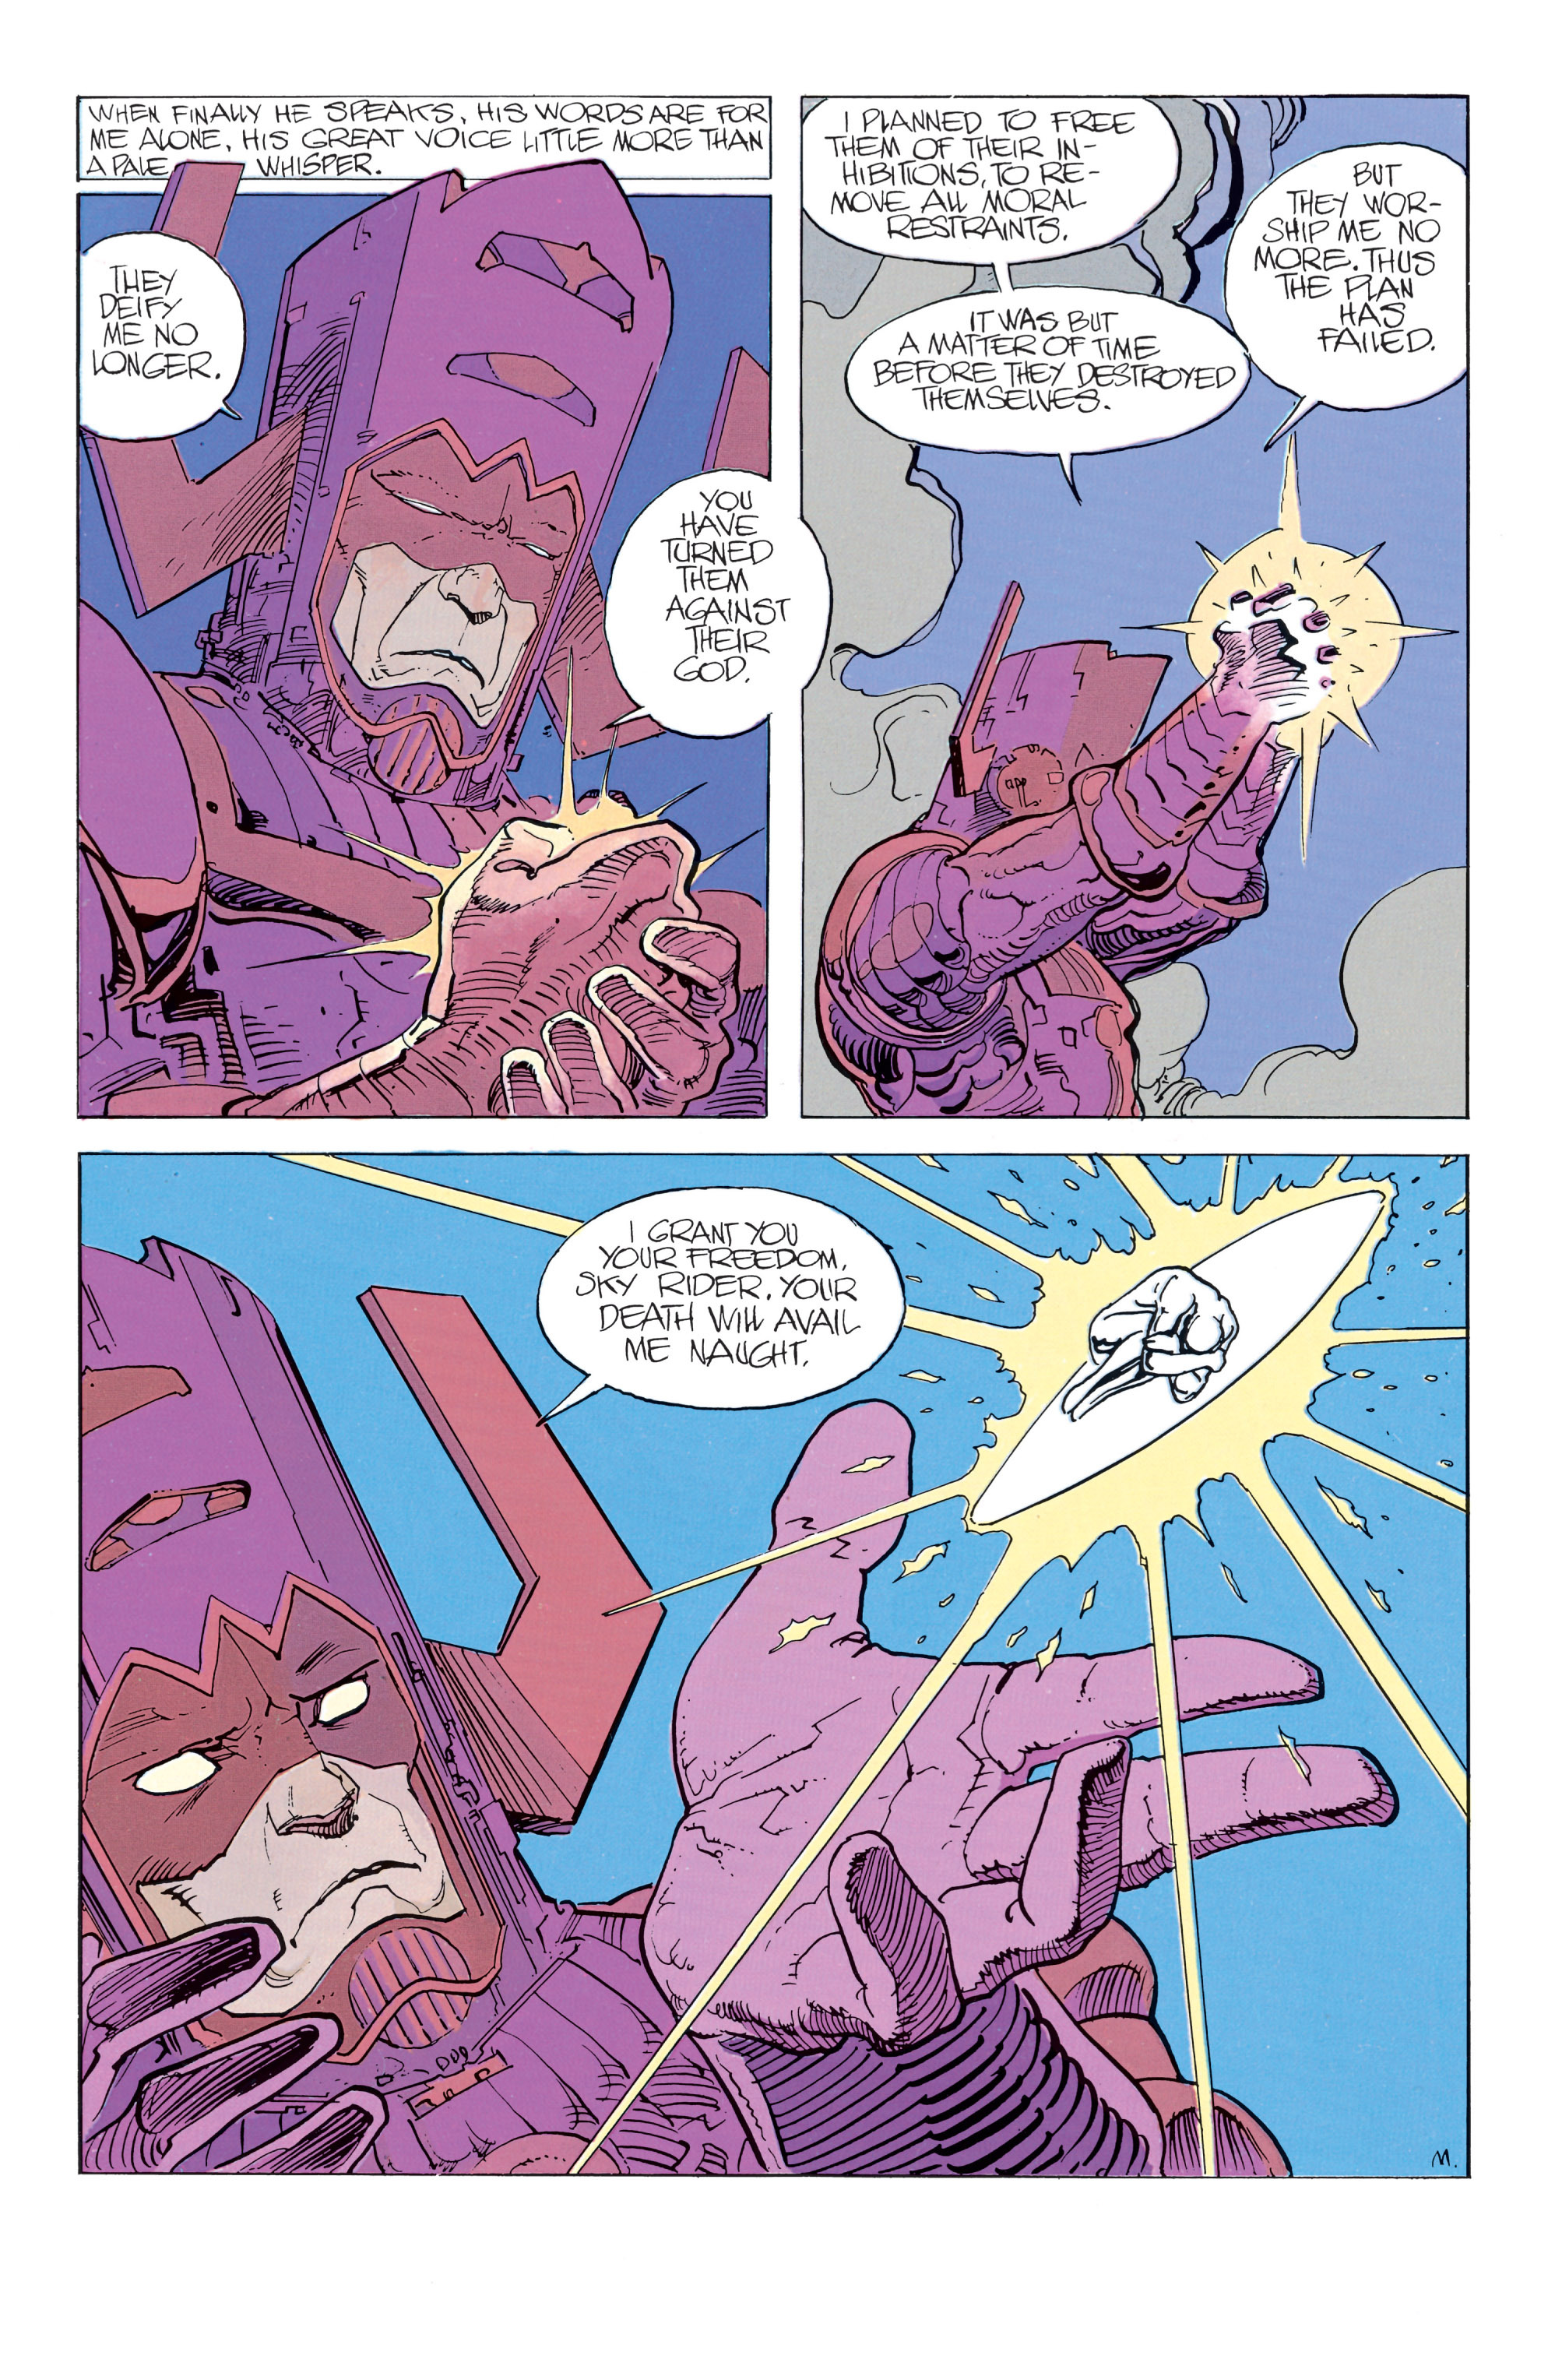 Read online Silver Surfer: Parable comic -  Issue # TPB - 49